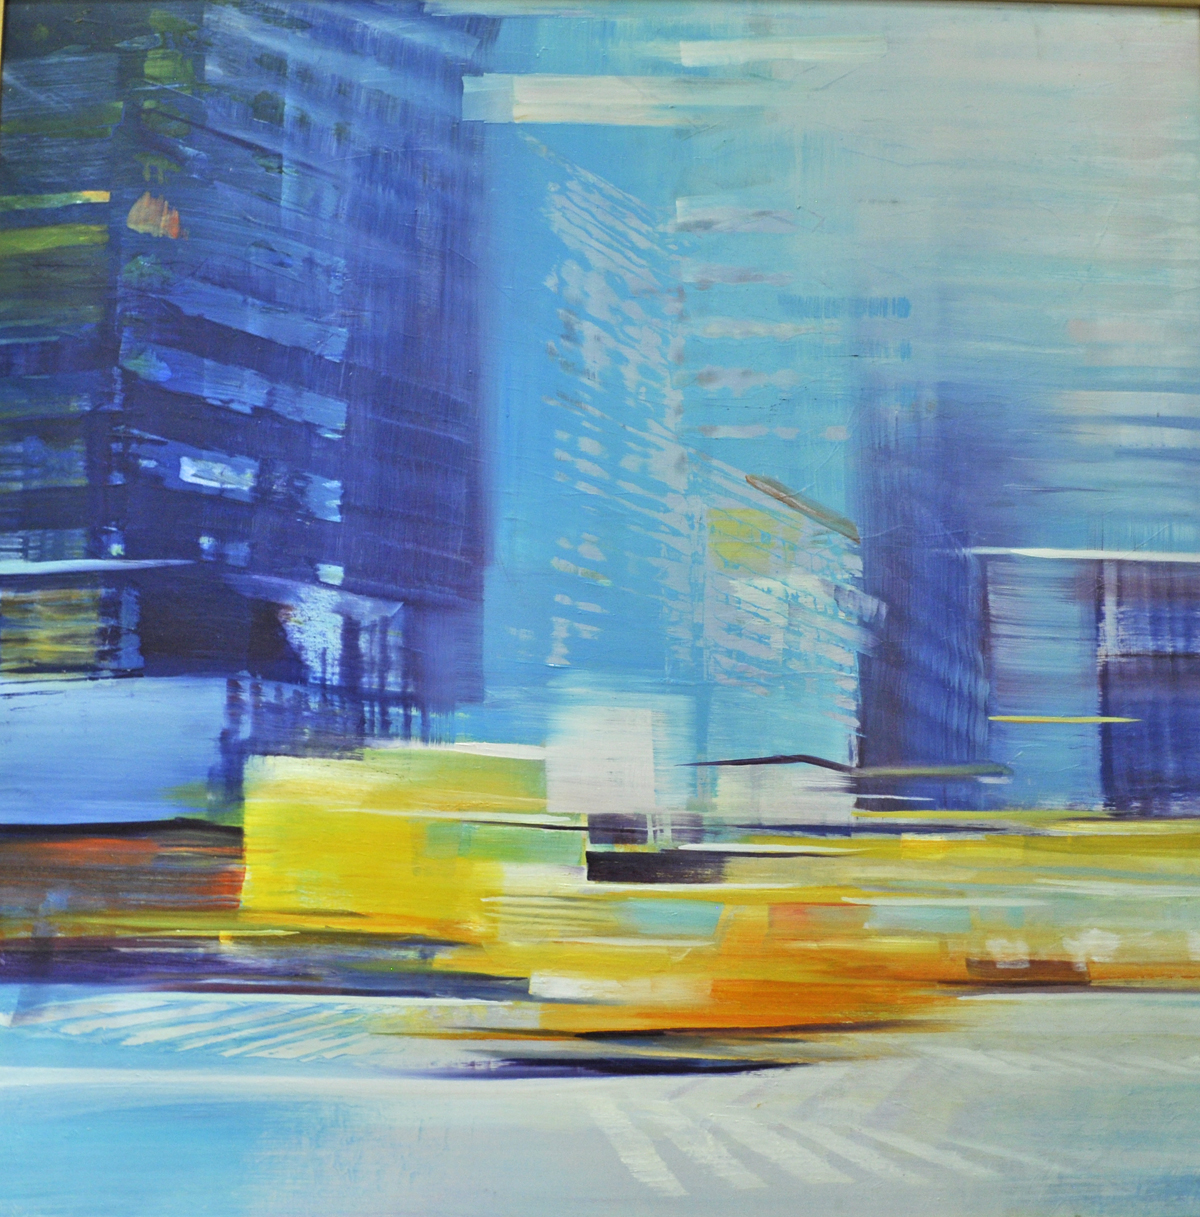 Dunlop_taxi_oil on anodized aluminum_36x36.jpg